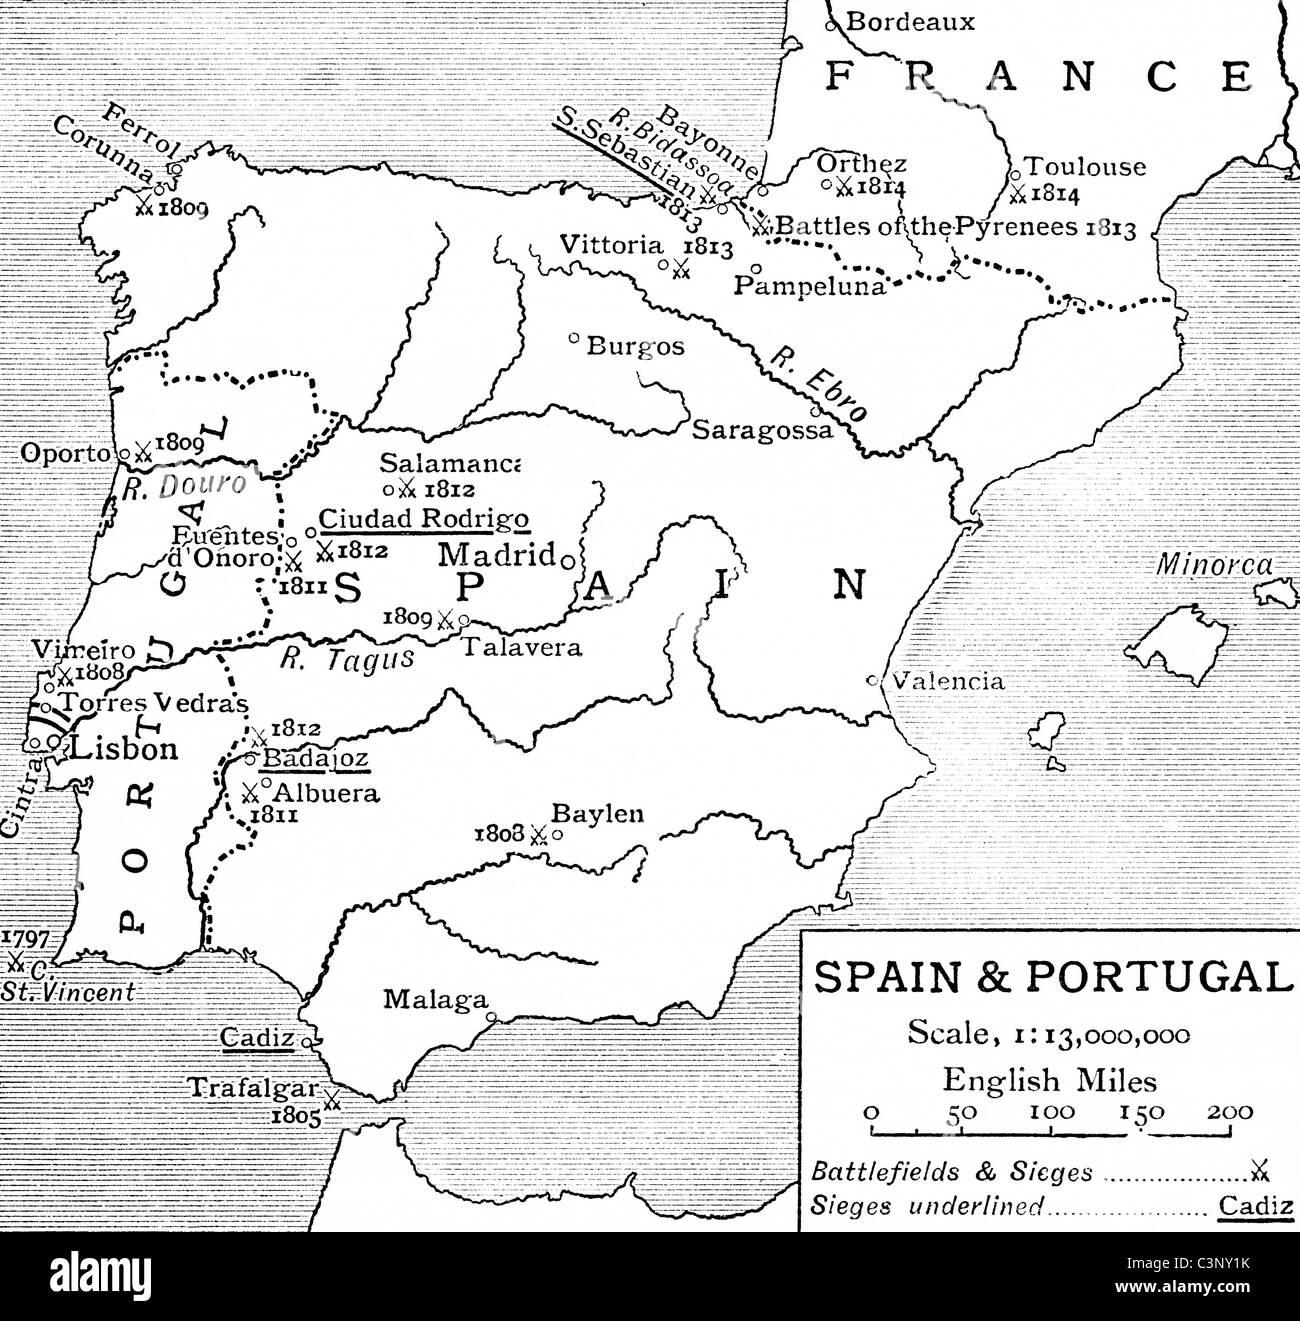 Map Of Spain And Portugal At The Time Of The Peninsular War From - Portugal england map